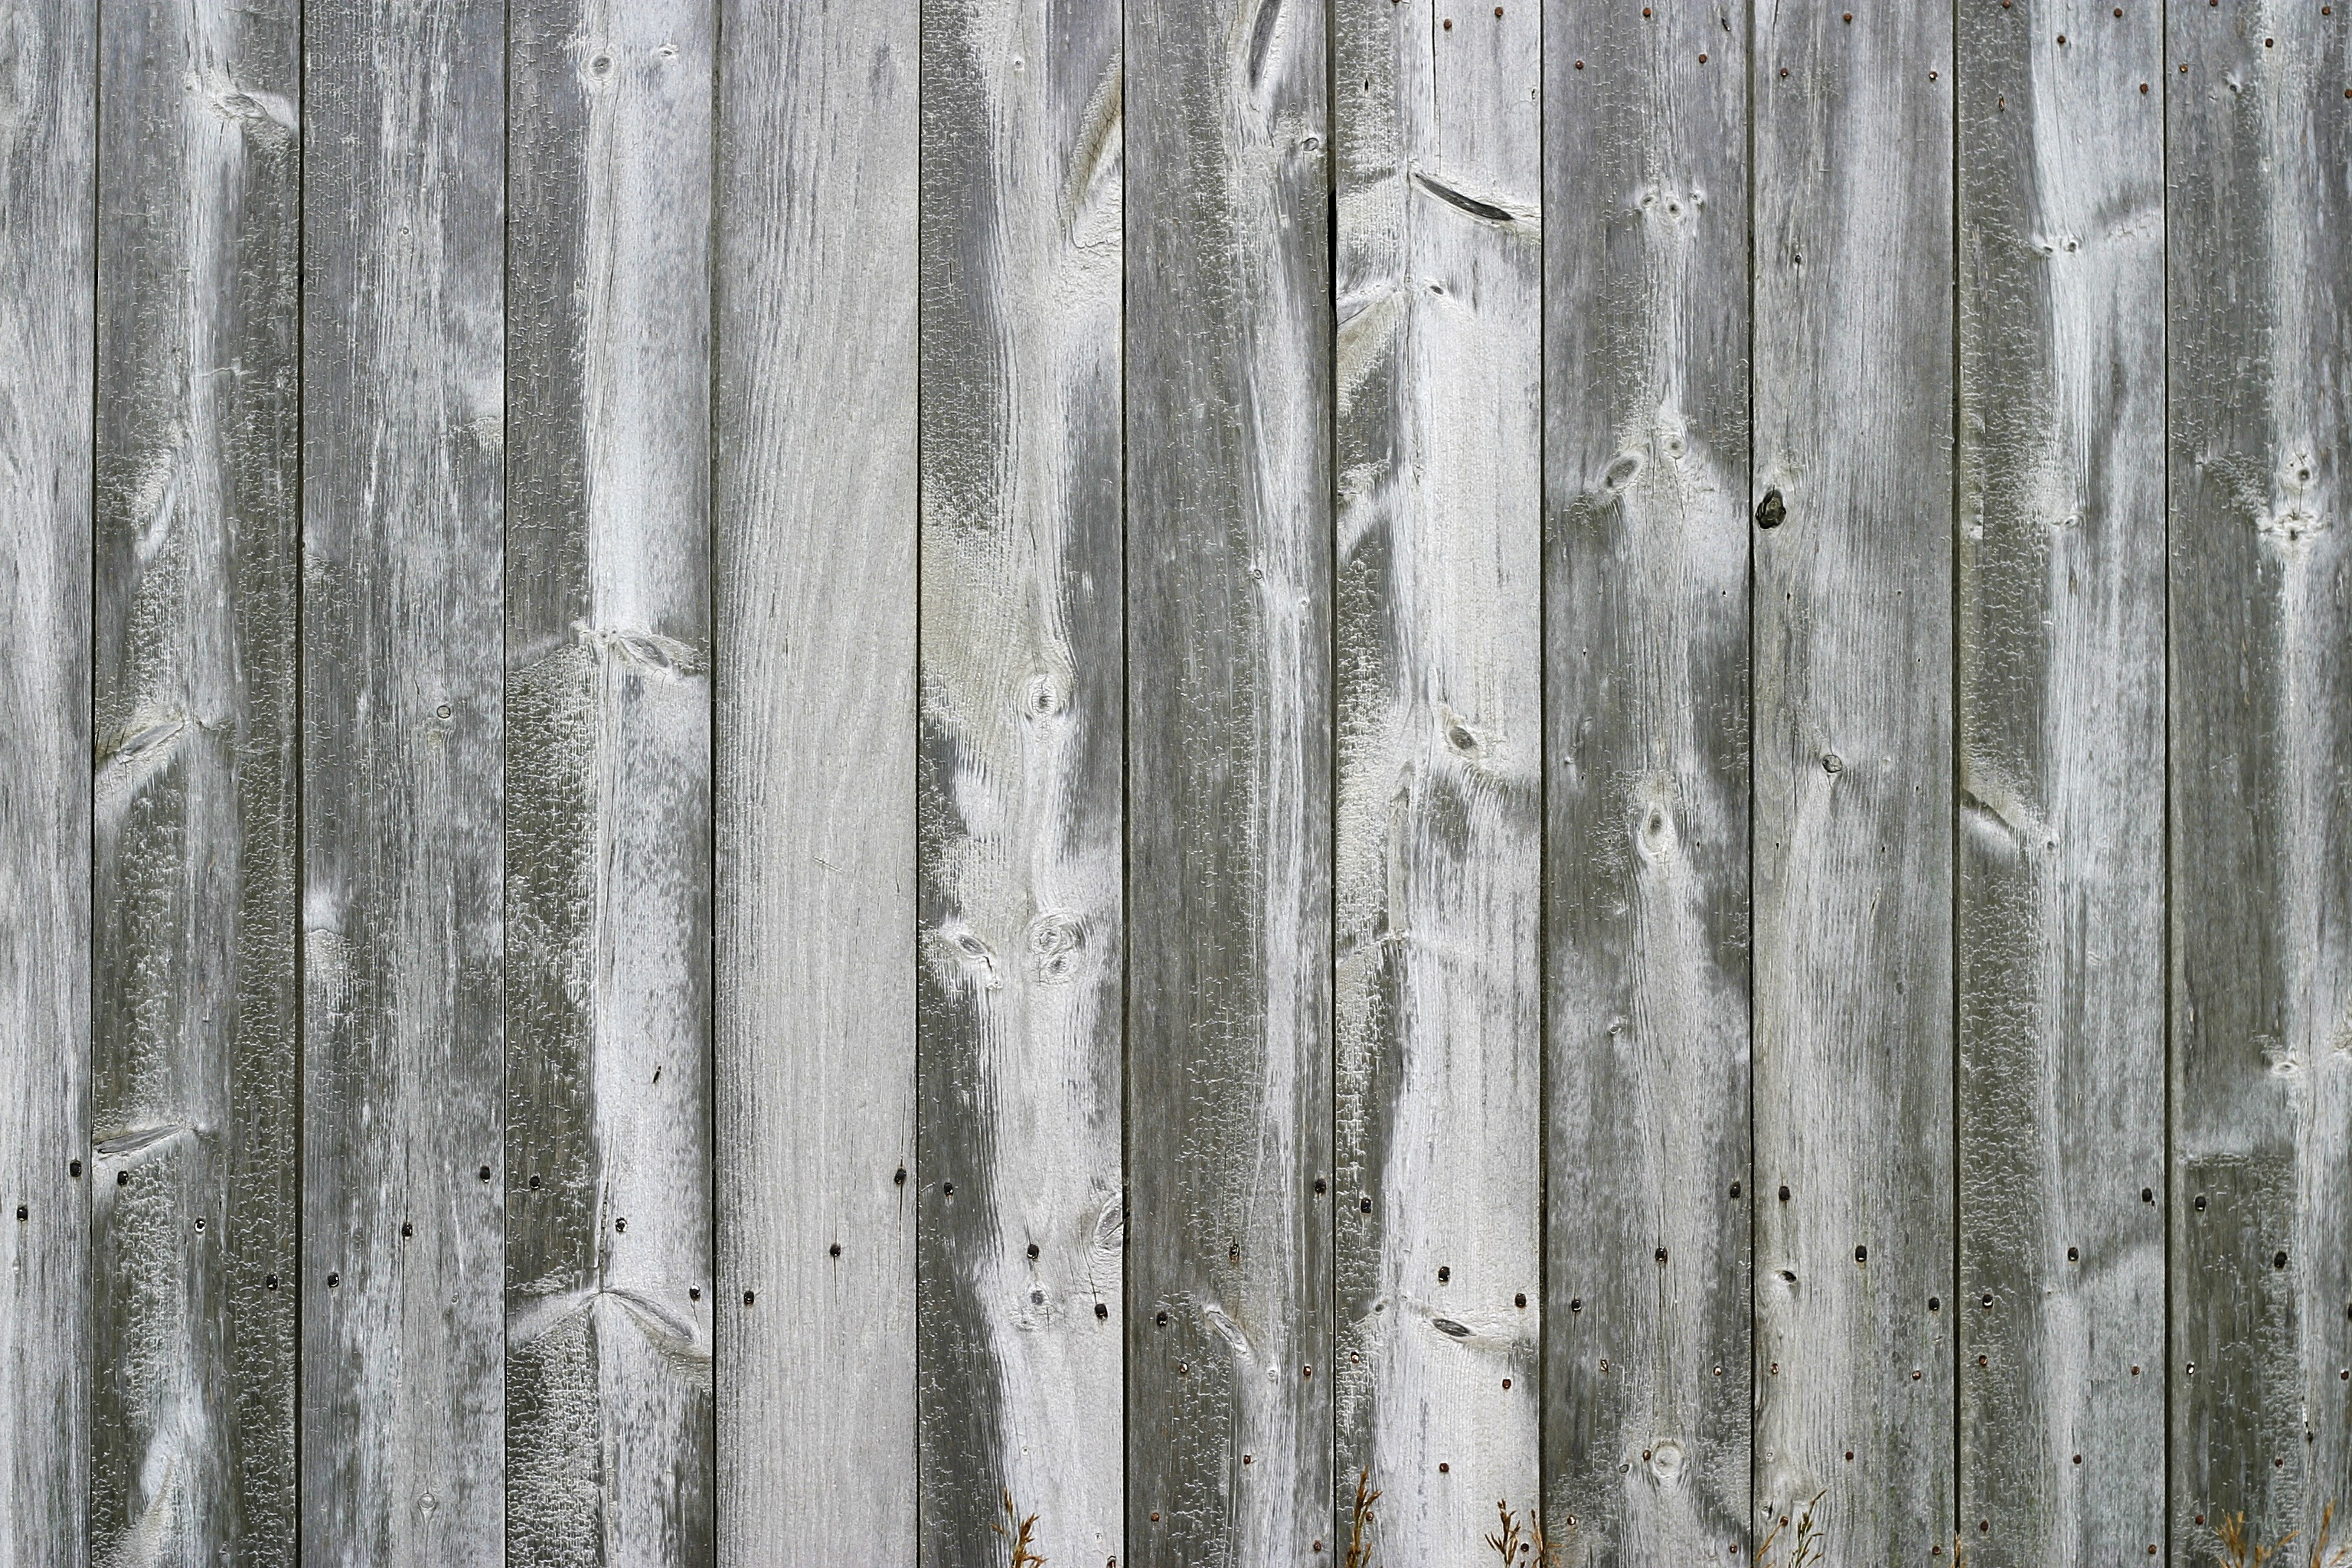 Barn wood background ·① download free awesome backgrounds